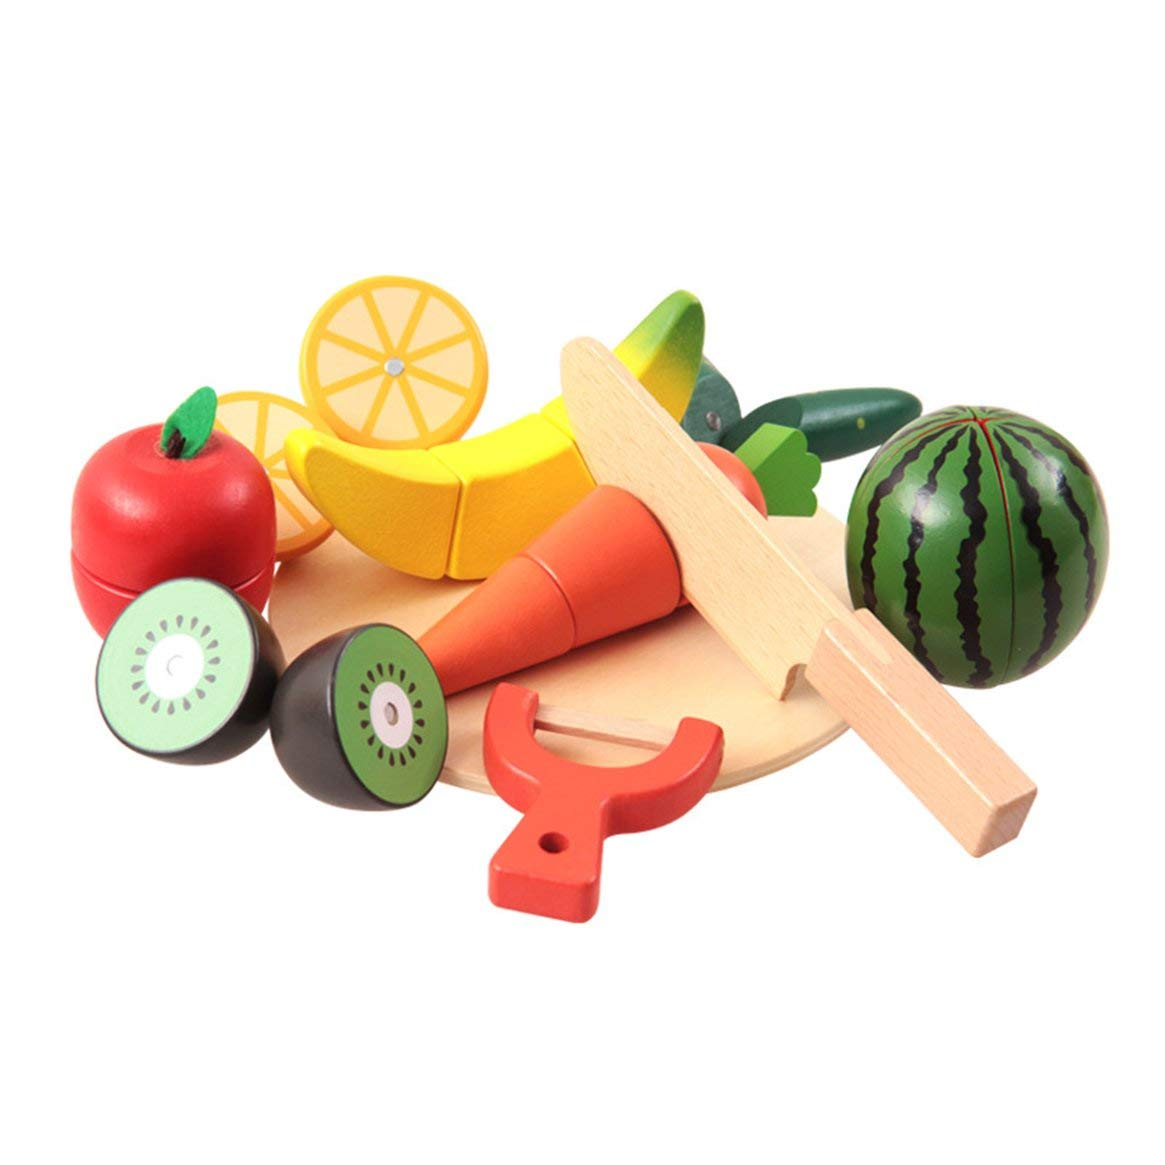 Colorful Magnet Children Play House Fruits Vegetables Cut Simulation Children Kitchen Toys Early Educational Toys - multicolor Delicacydex